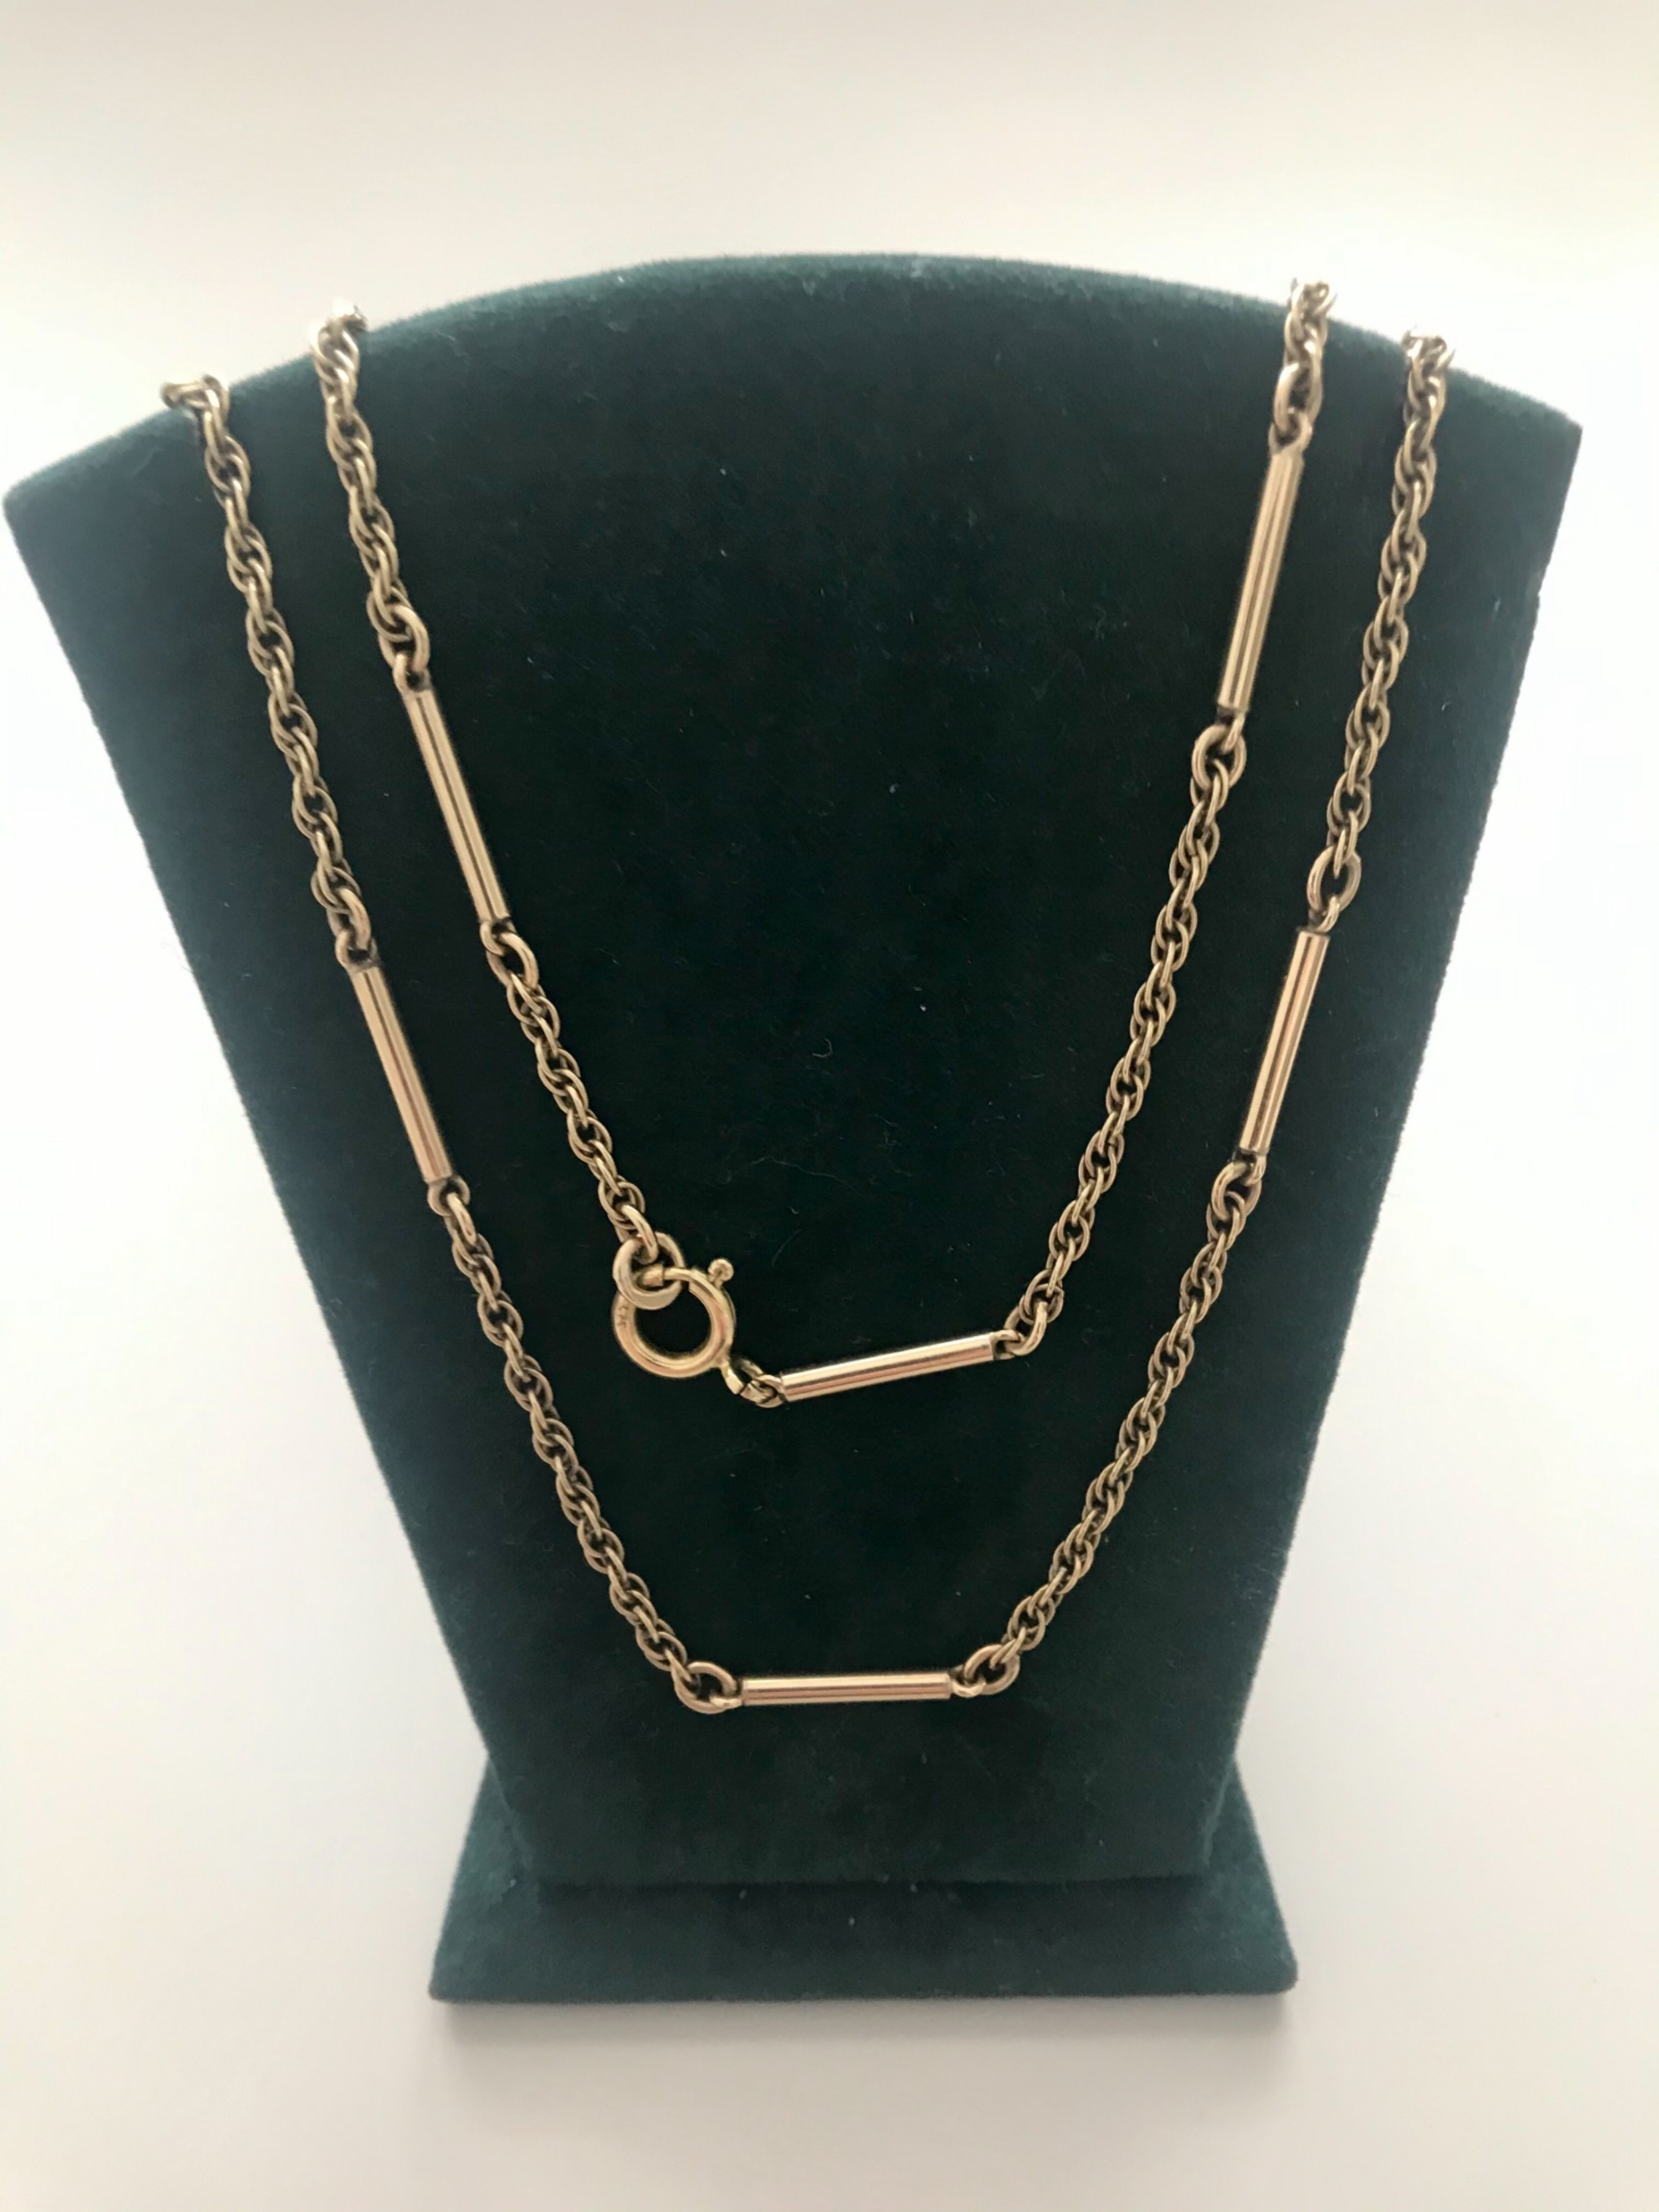 9 ct gold necklace